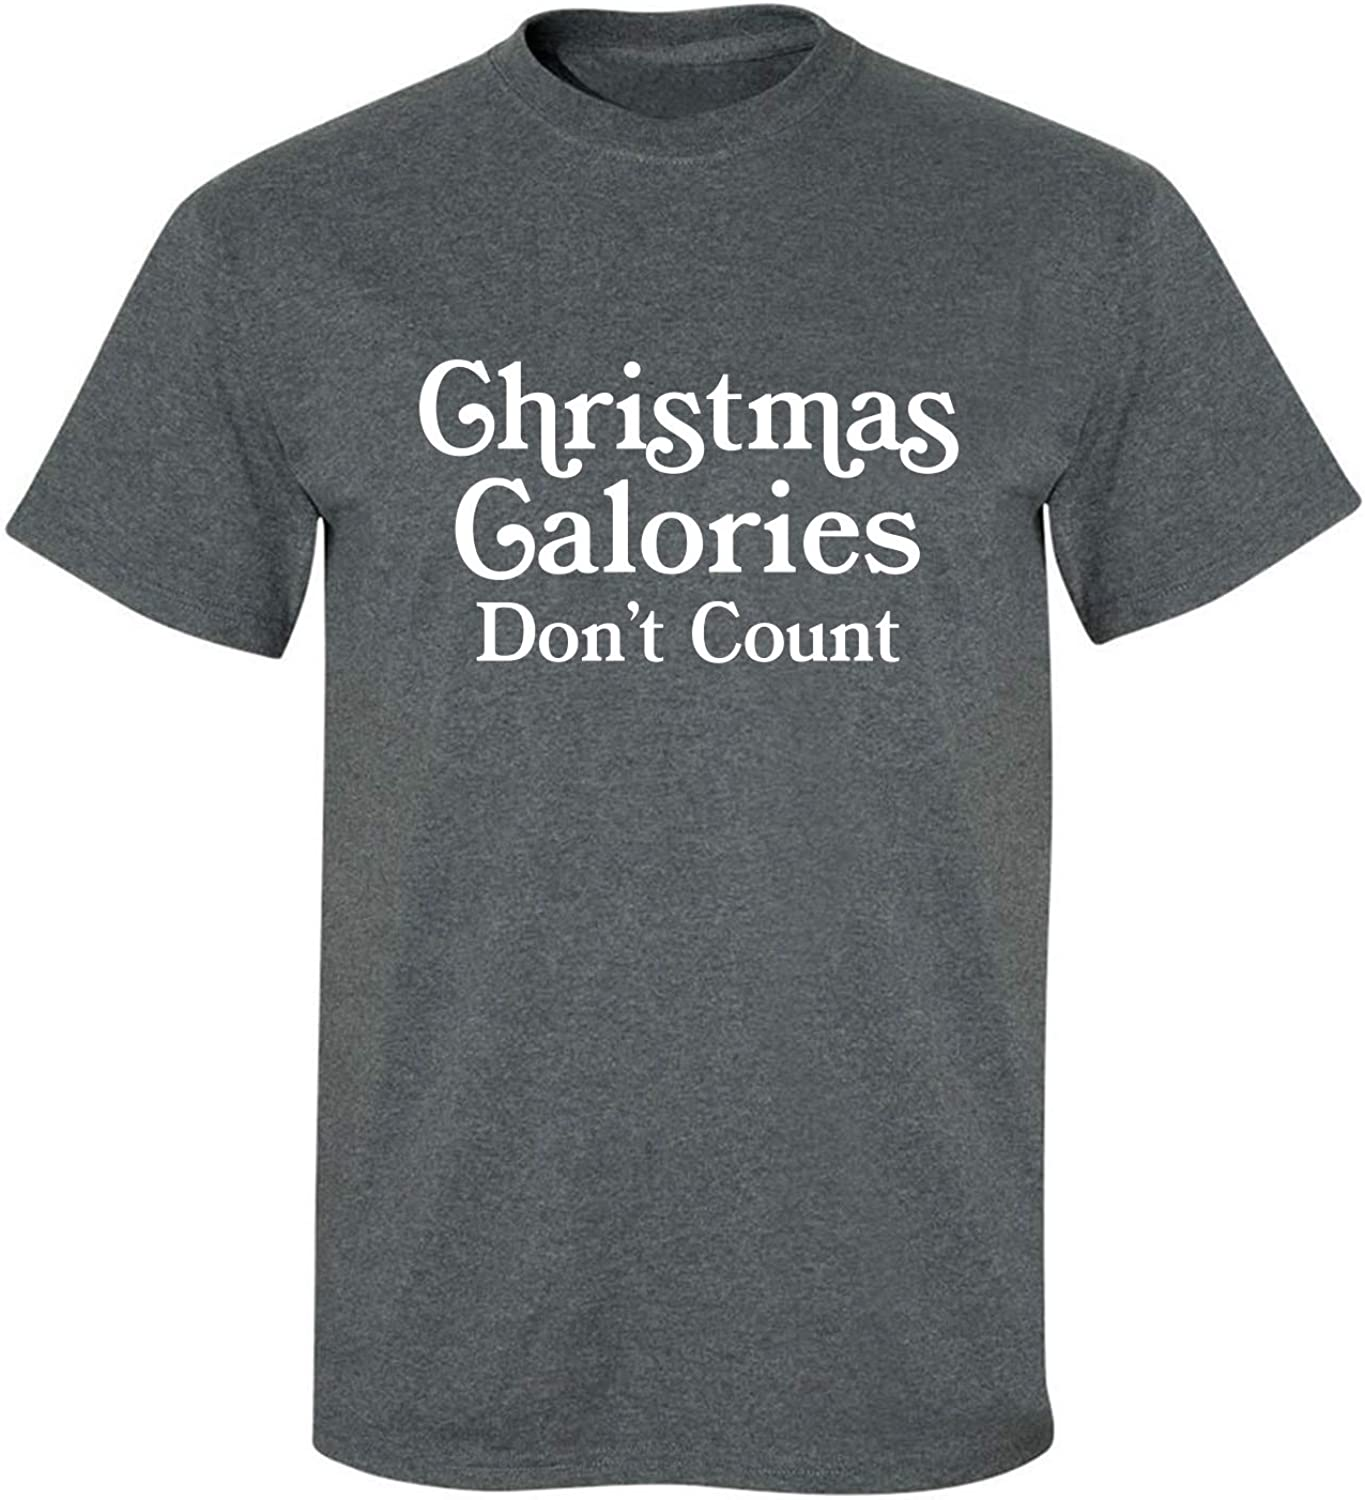 Christmas Calories Don't Count Adult T-Shirt in Dark Heather - XXX-Large